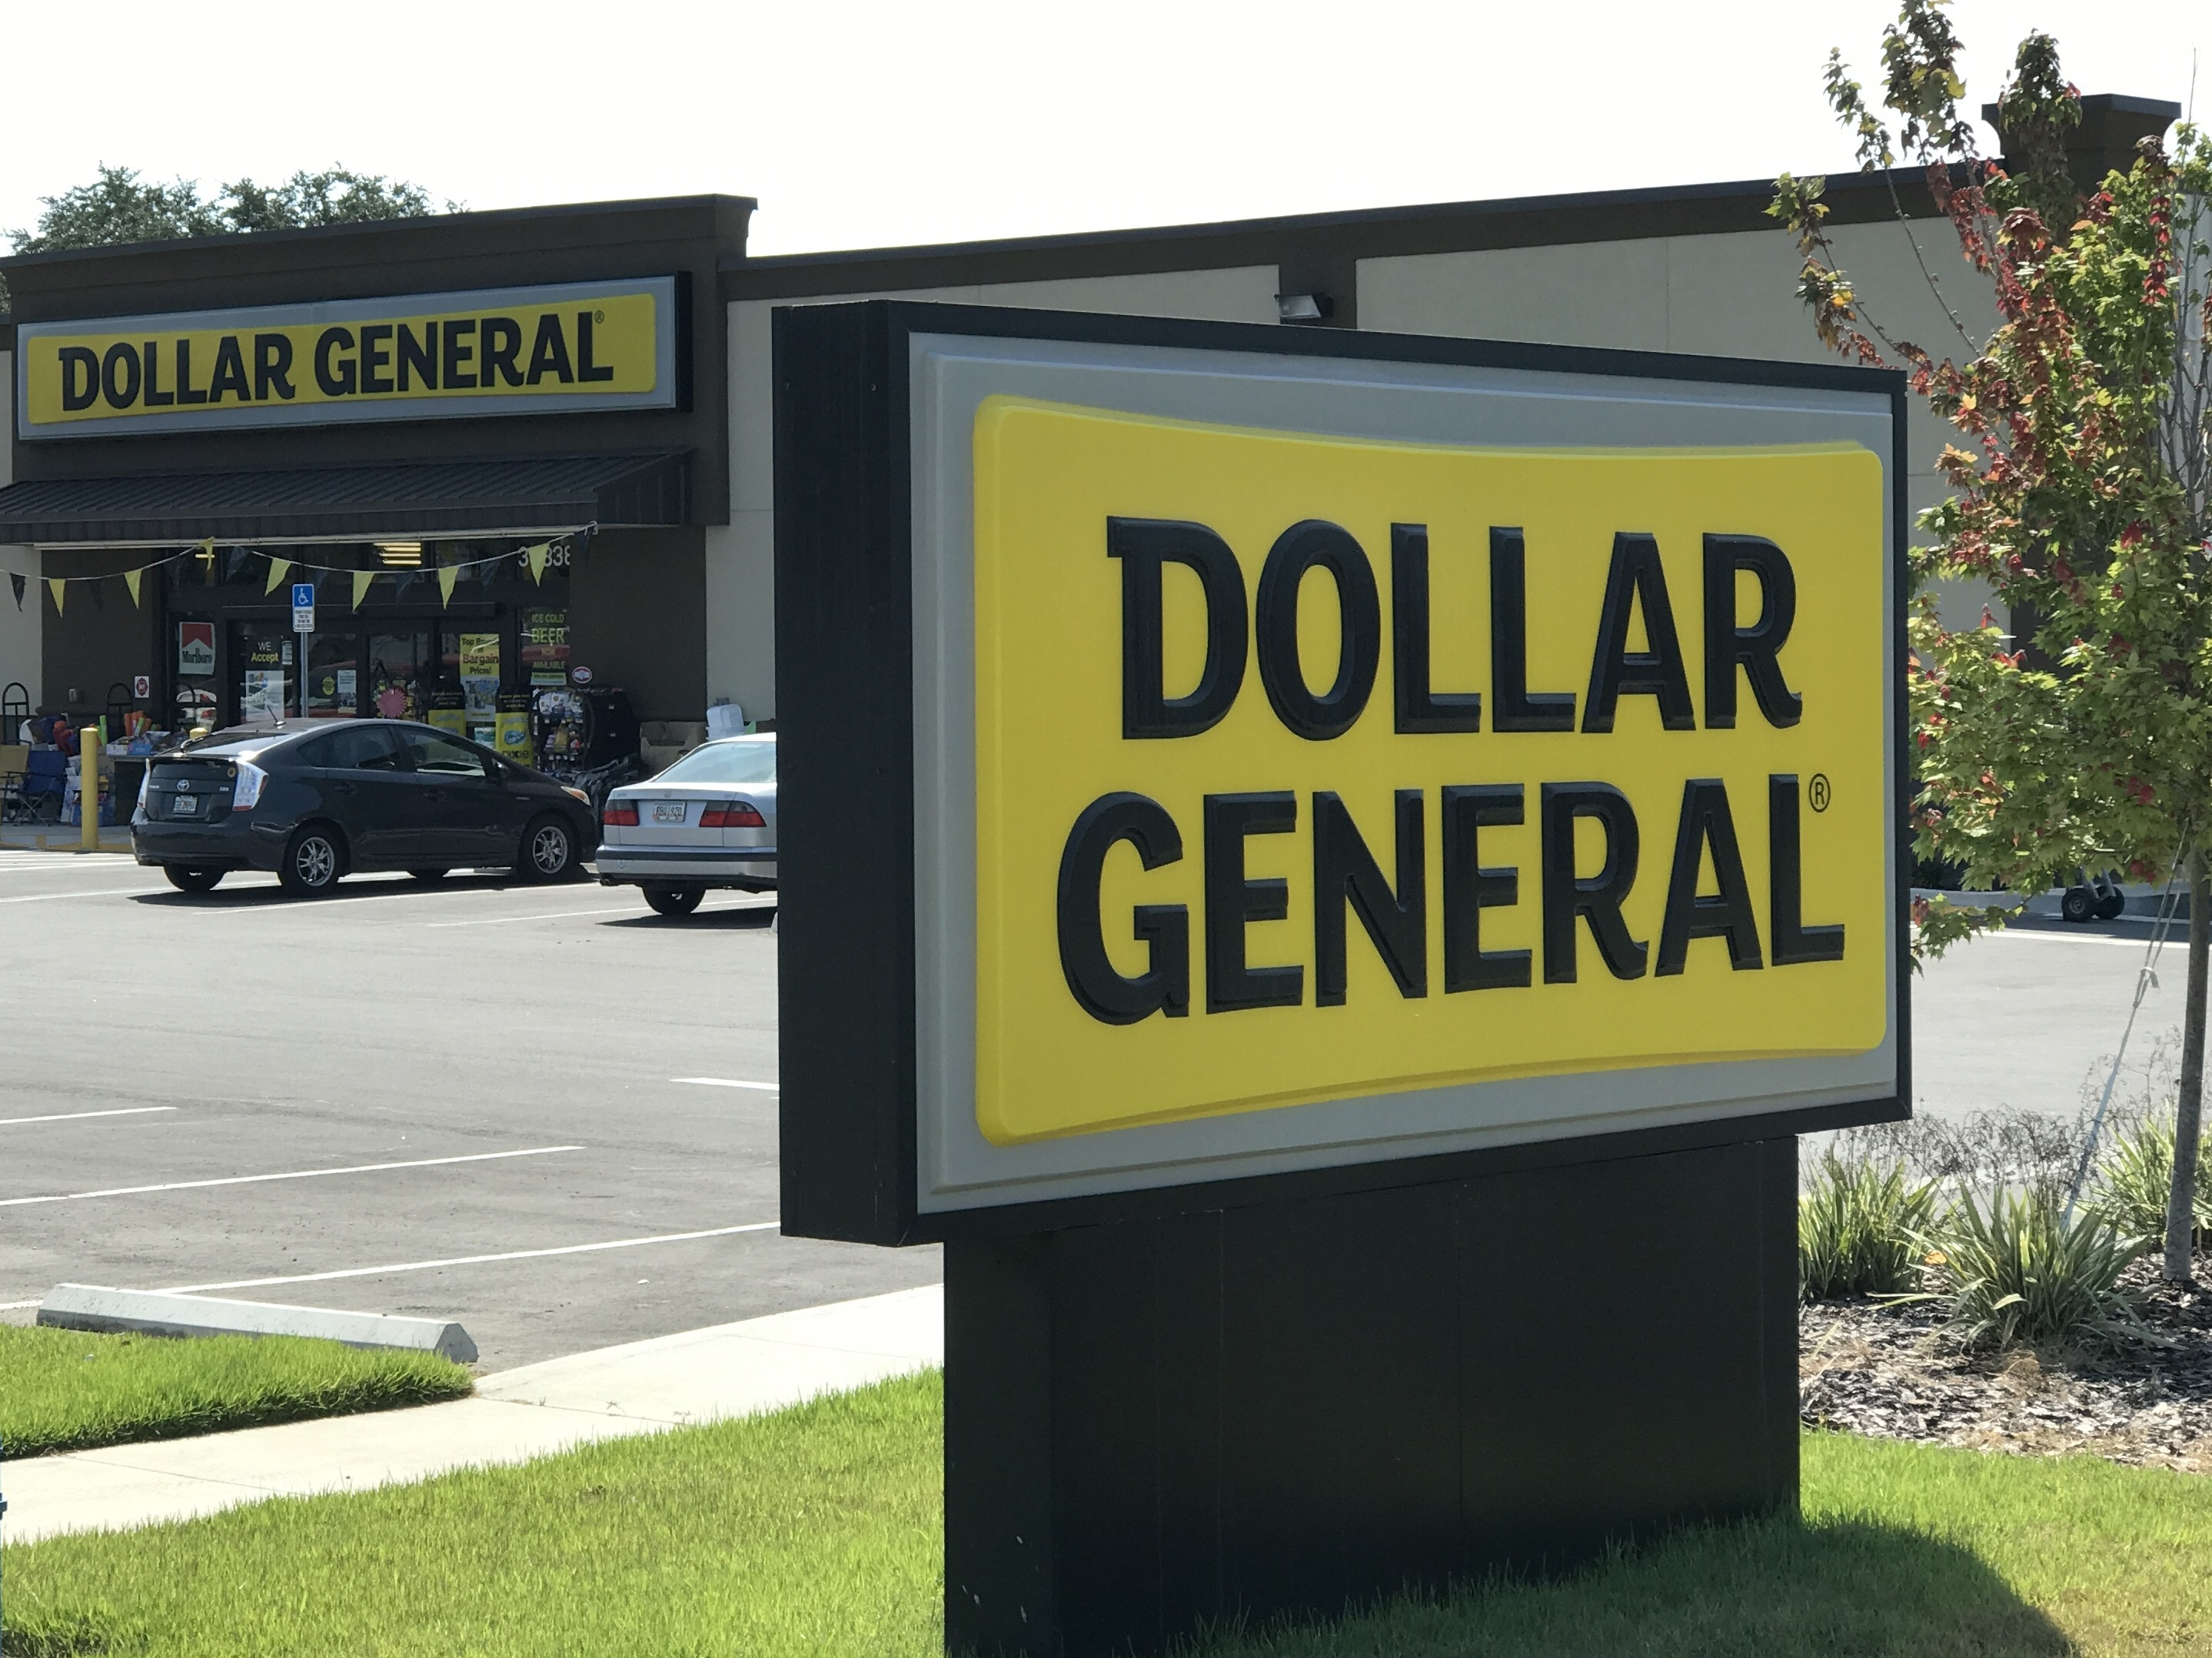 Dollar General Extends Streak of Rising Sales, Plans 900 More Stores